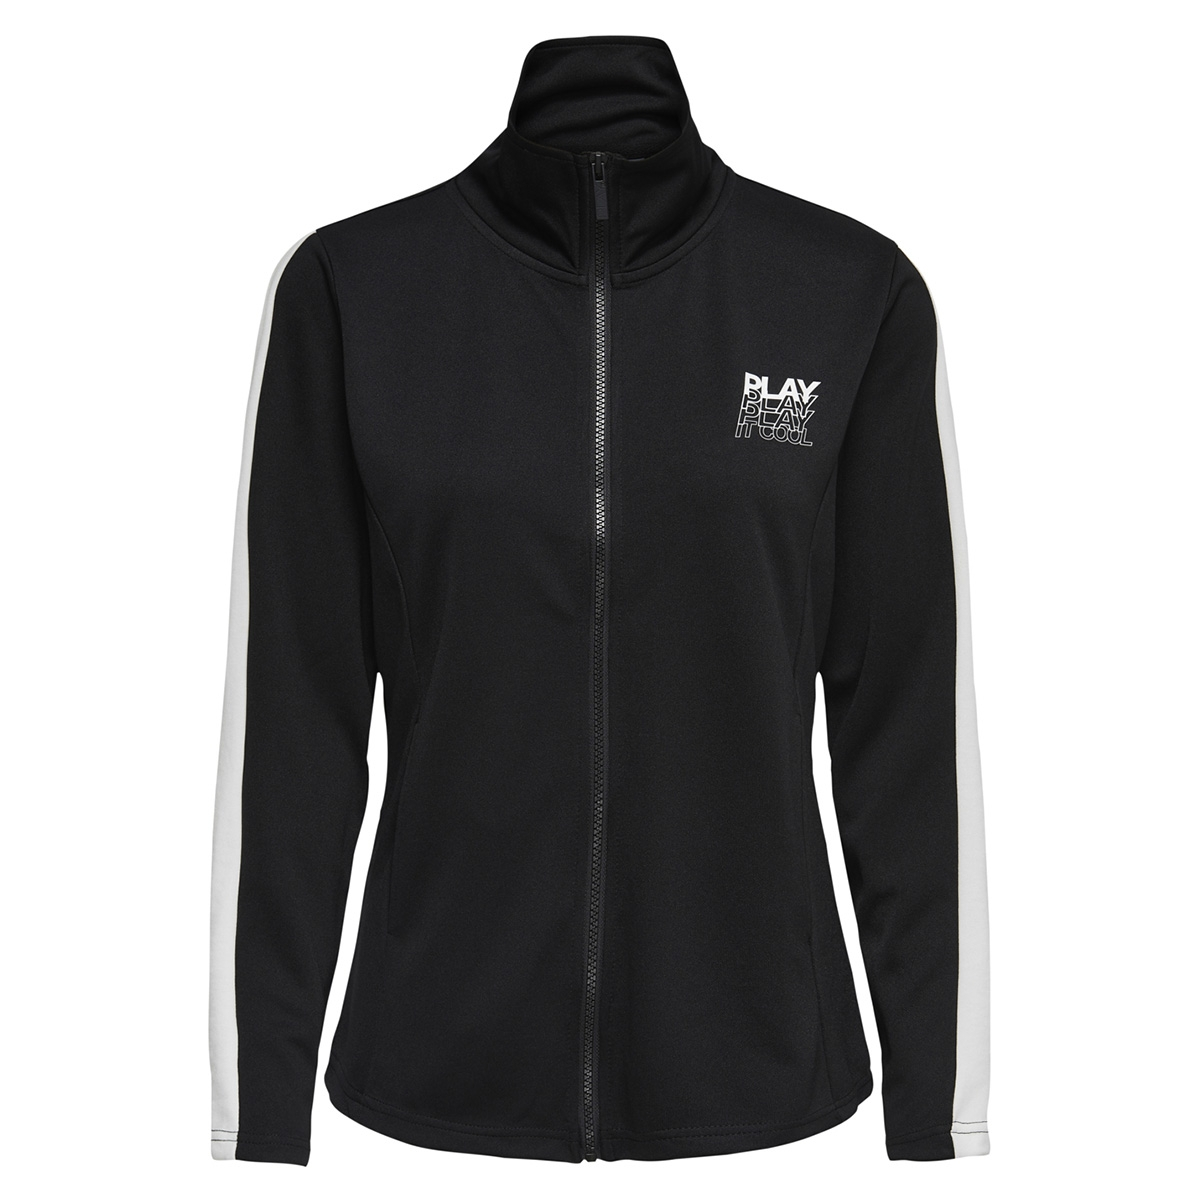 onphermosa fitted highneck zip swea 15170223 only play sport vest black/w. white